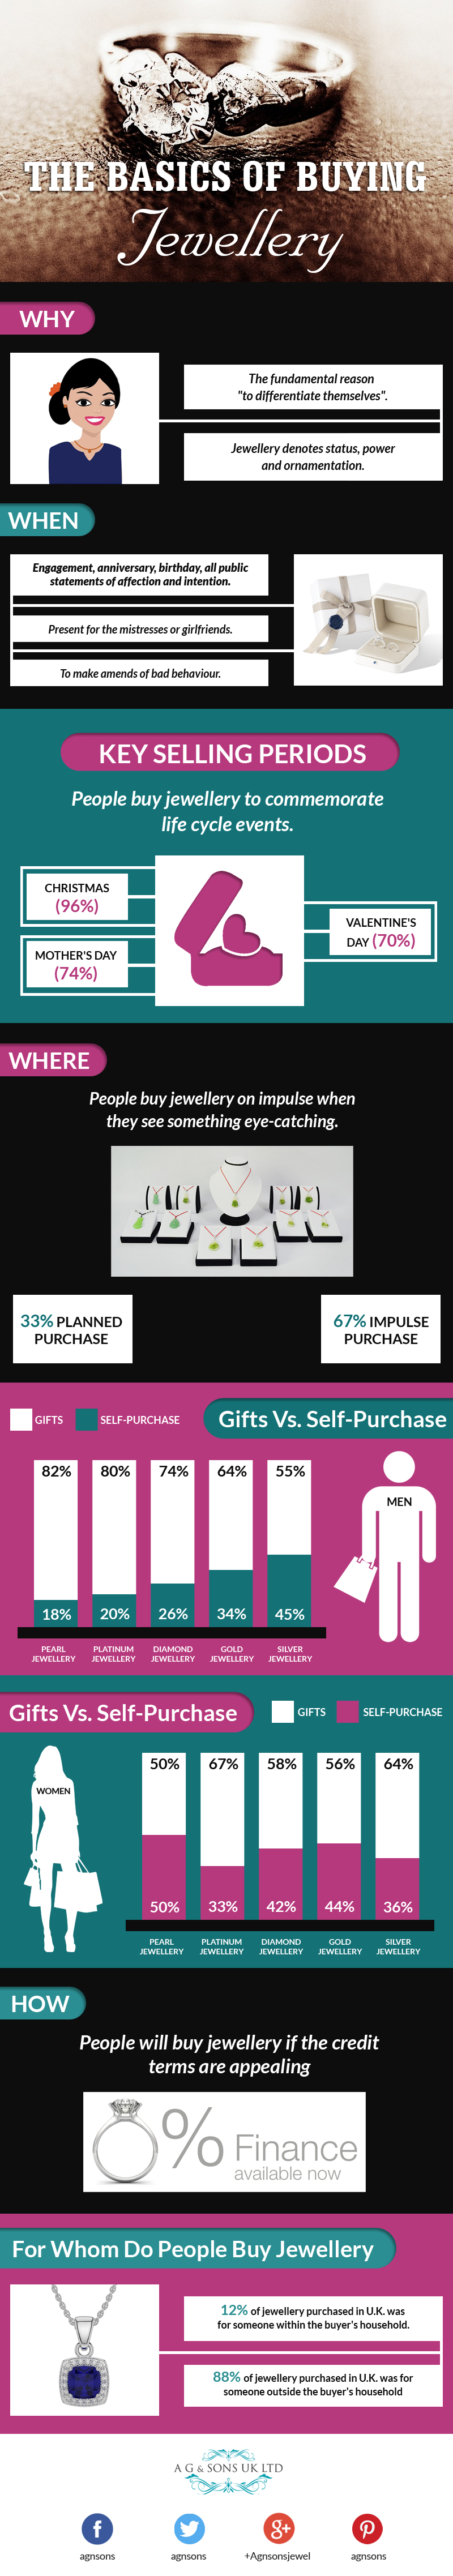 The Basics of Buying Jewellery Infographic